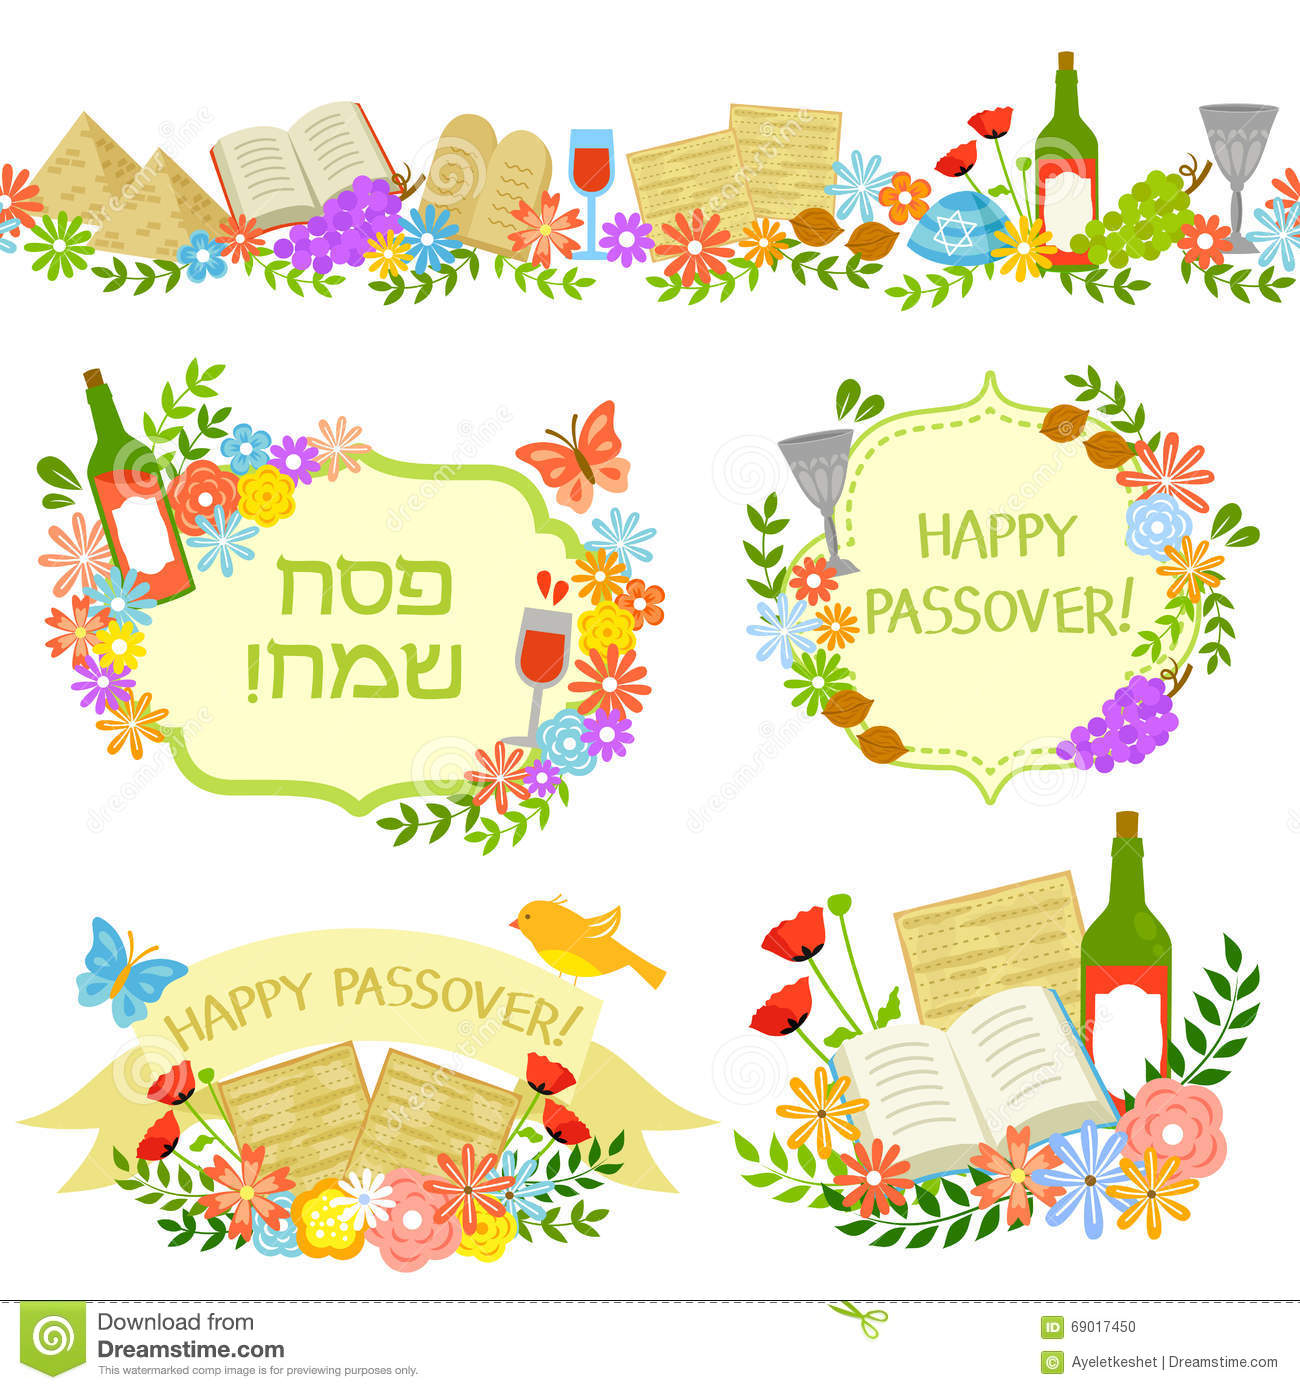 Passover stock illustrations 3123 passover stock illustrations passover labels set of labels and border for passover happy passover is m4hsunfo